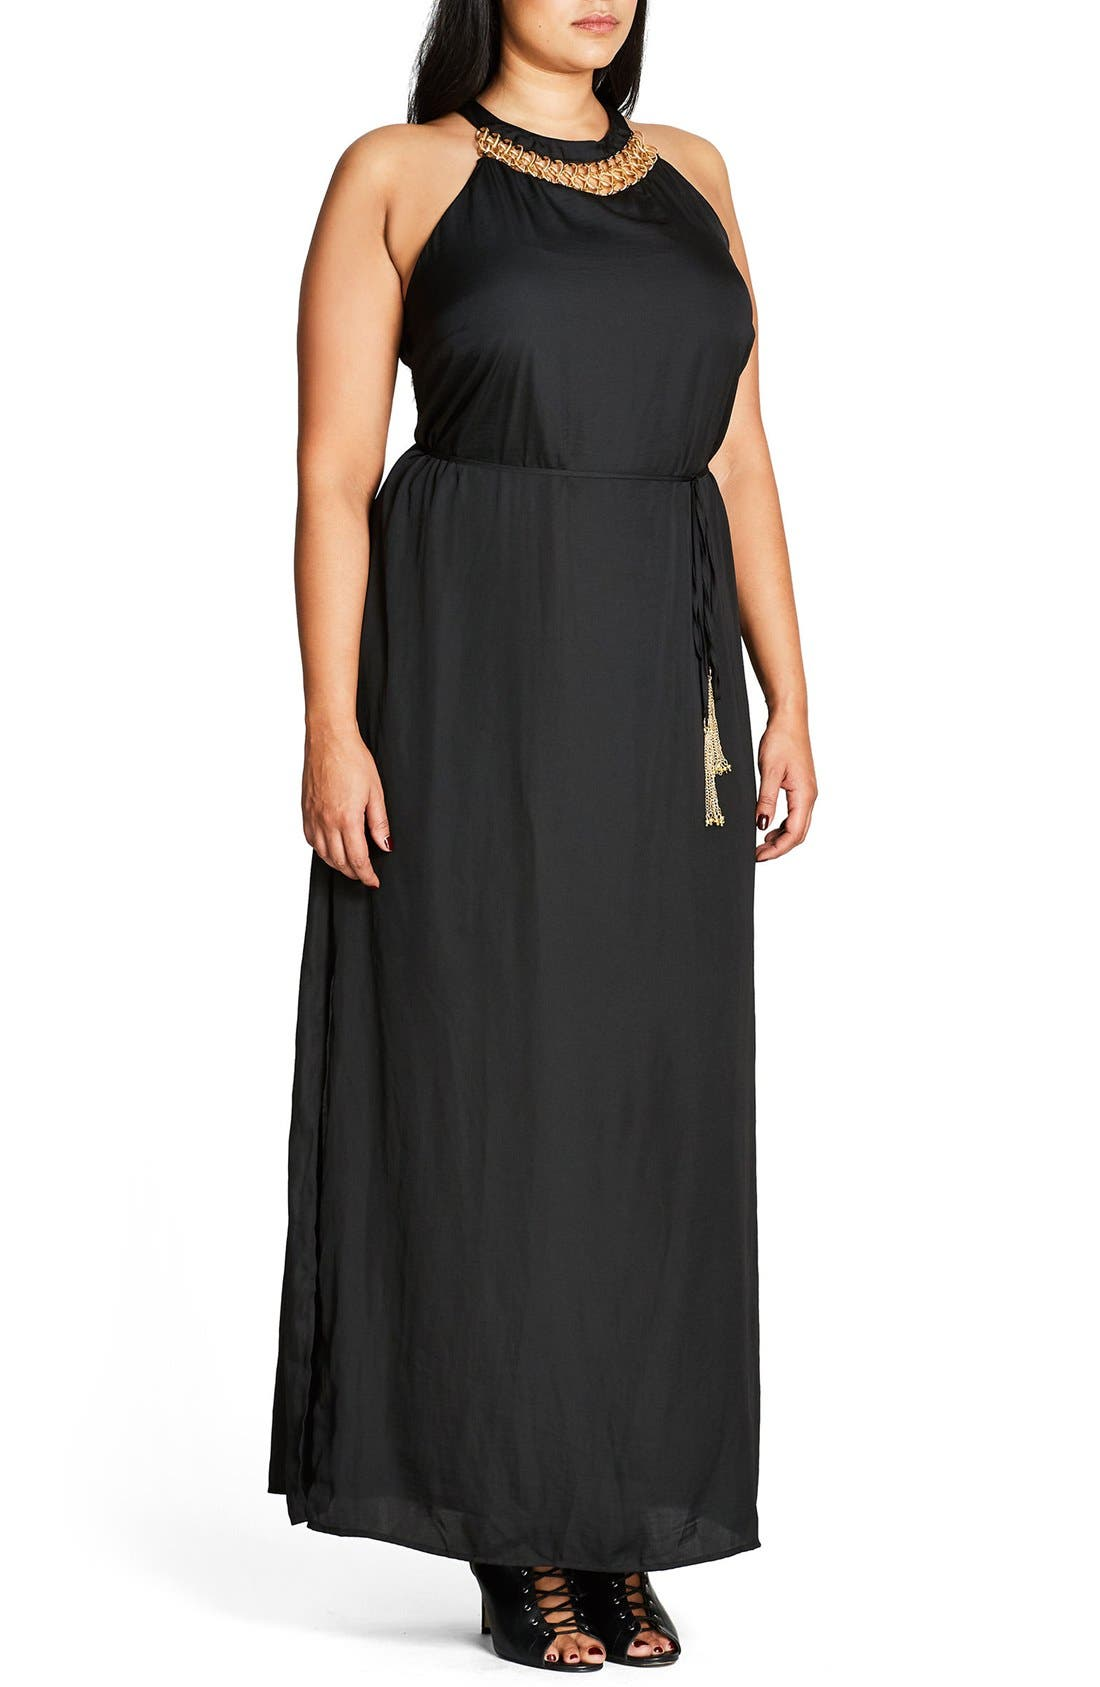 Ring Detail Maxi Dress,                             Alternate thumbnail 8, color,                             001